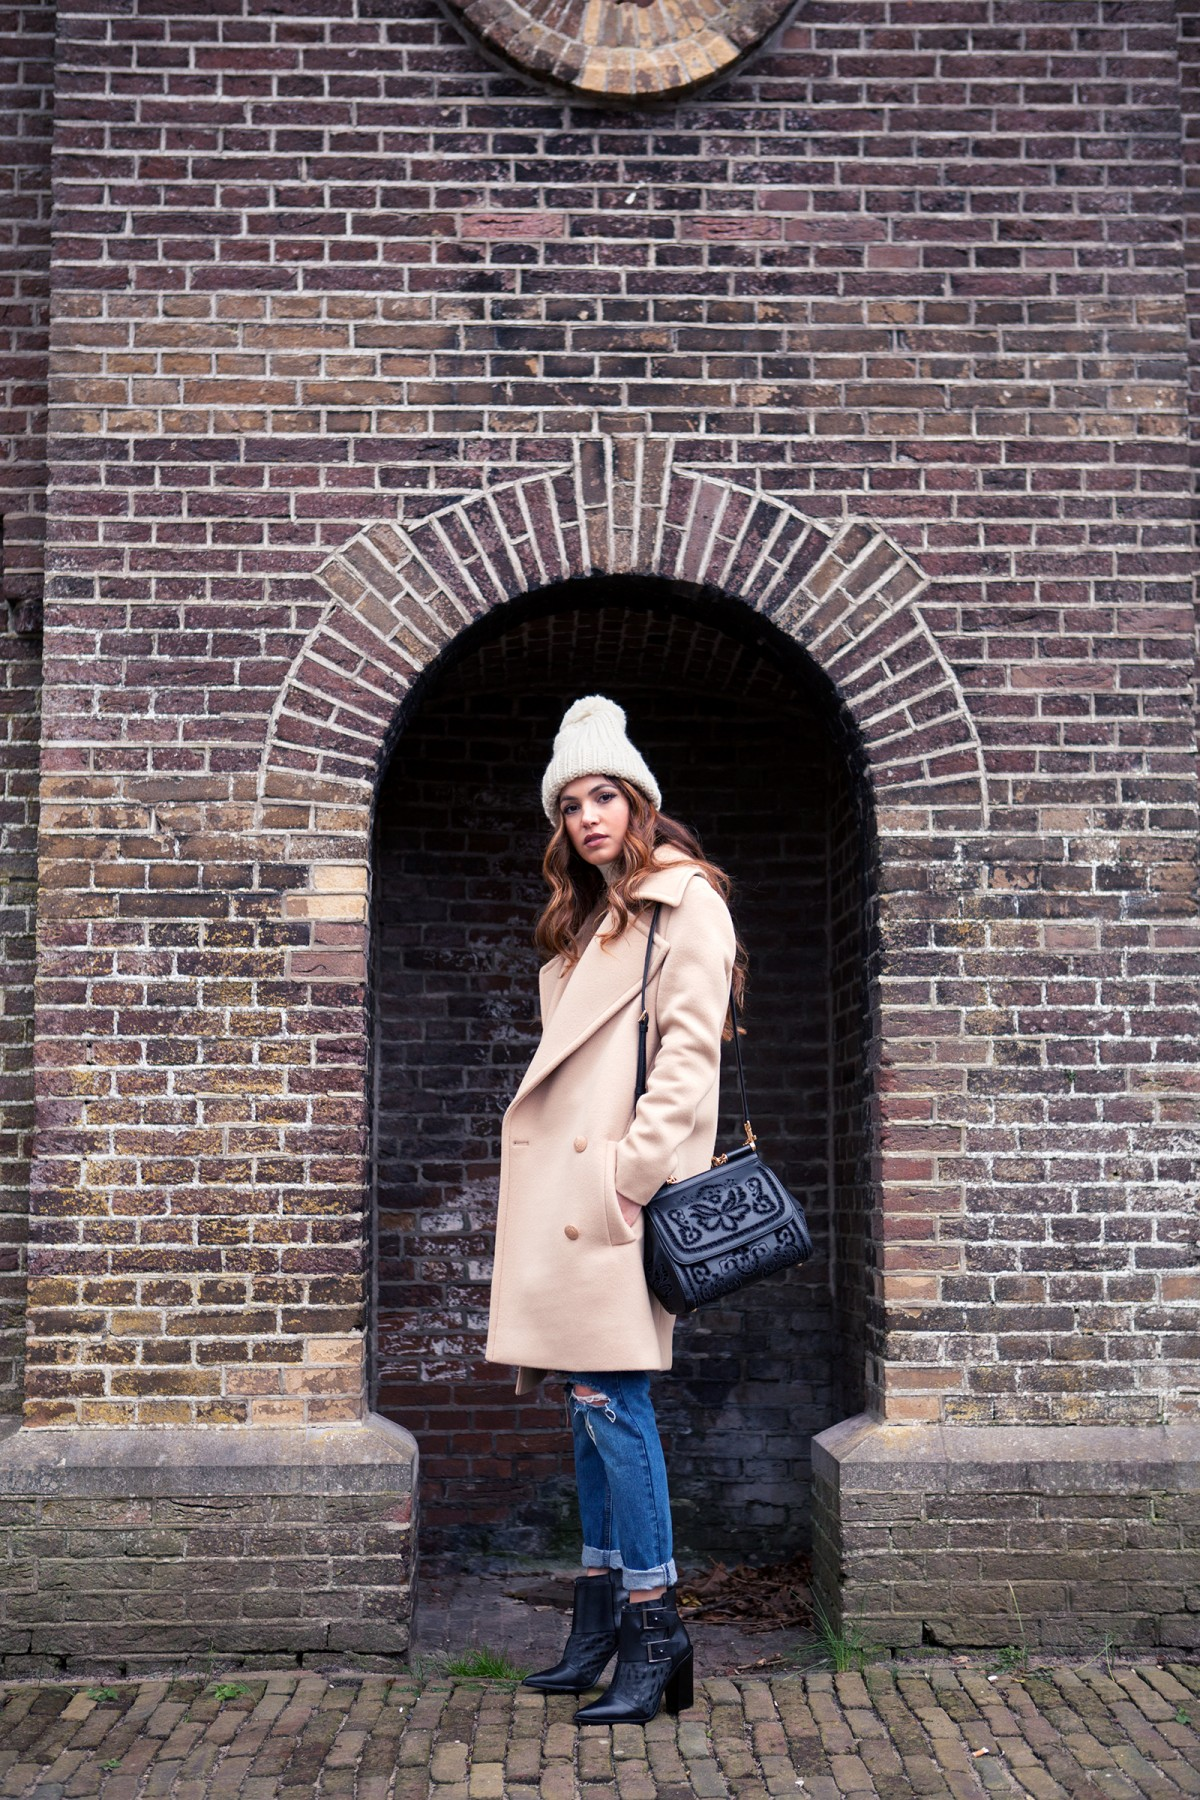 Negin Mirsalehi is wearing a camel colored coat from Stella McCartney